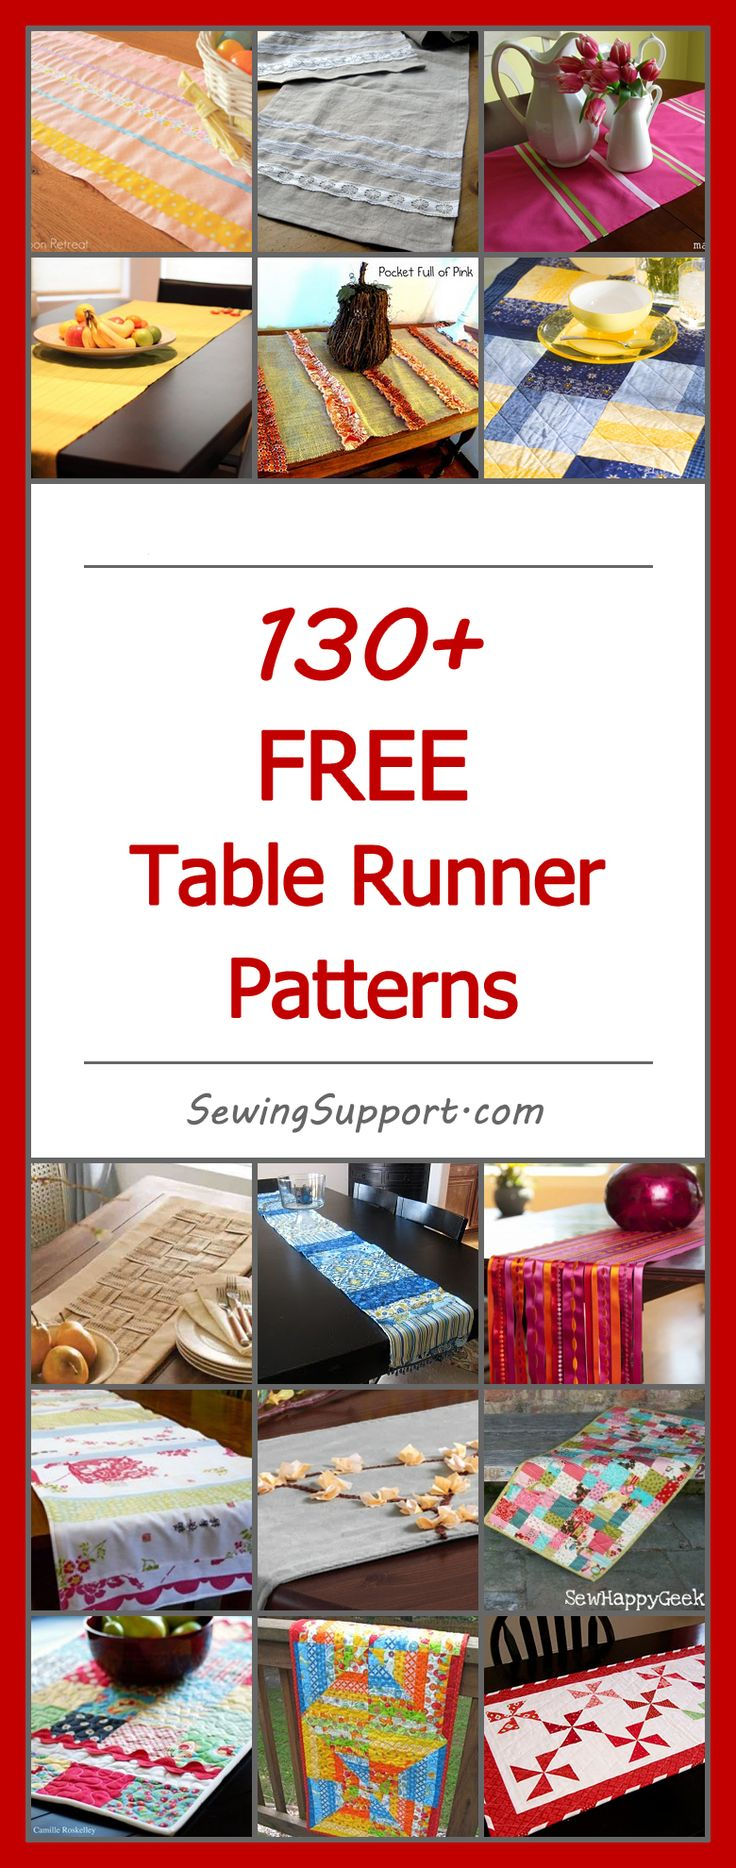 Lots of free table runner patterns.